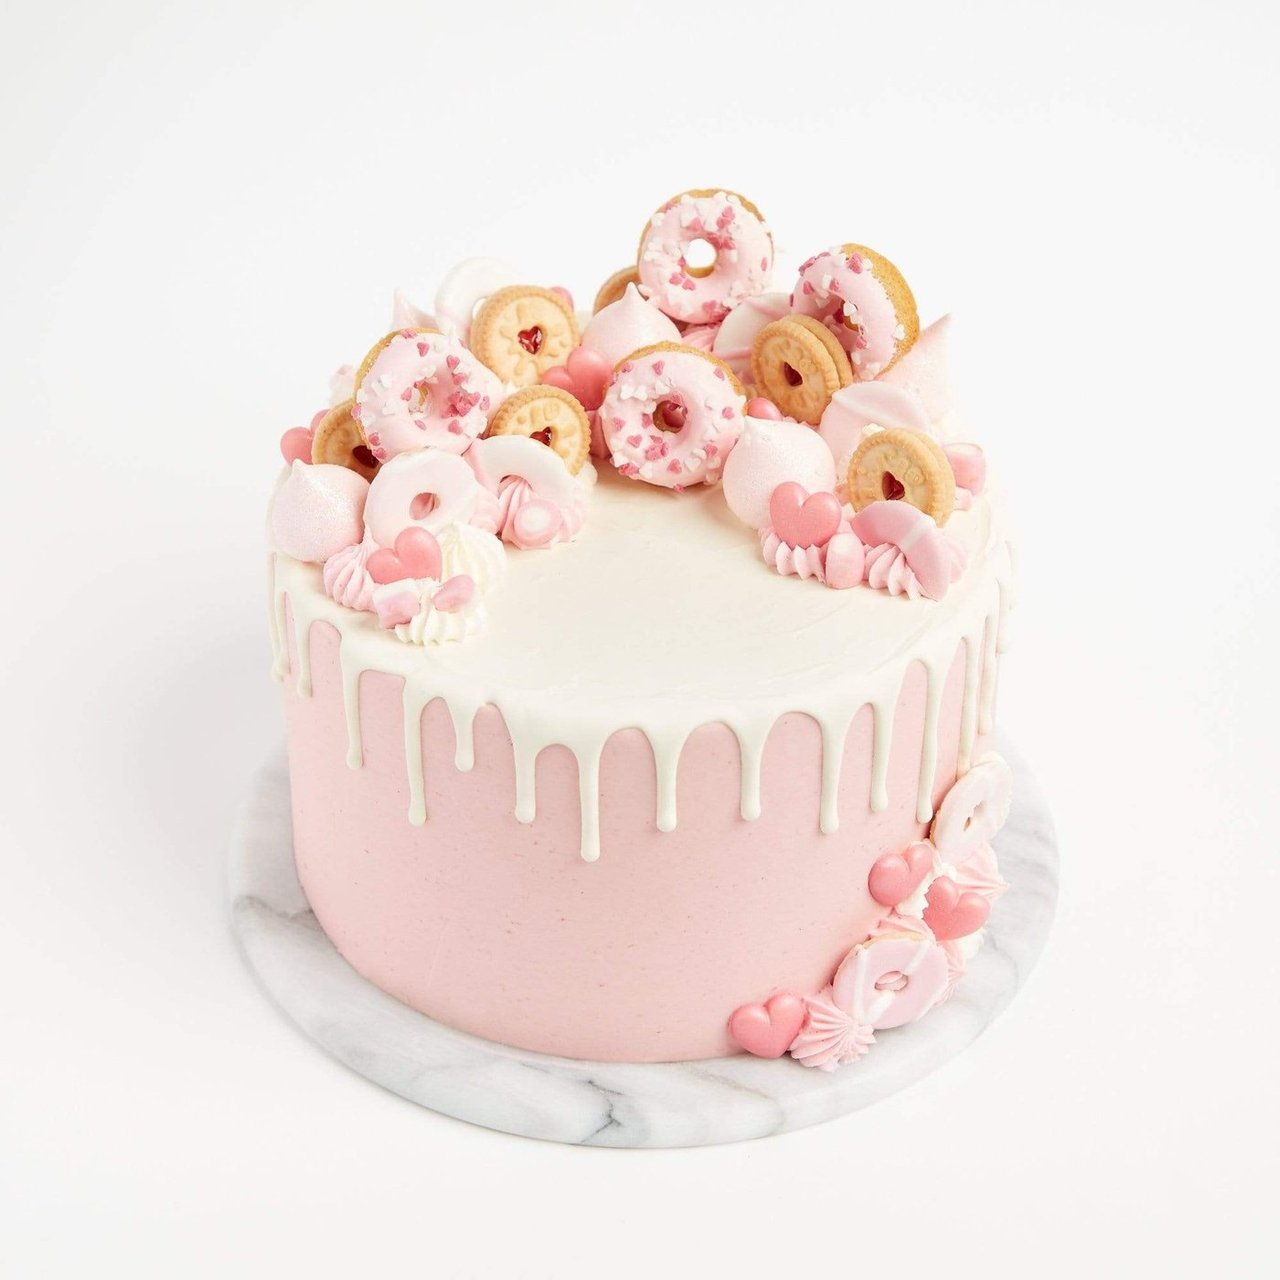 Awe Inspiring Pretty In Pink Cake Baked To Order Crumbs Doilies Funny Birthday Cards Online Overcheapnameinfo